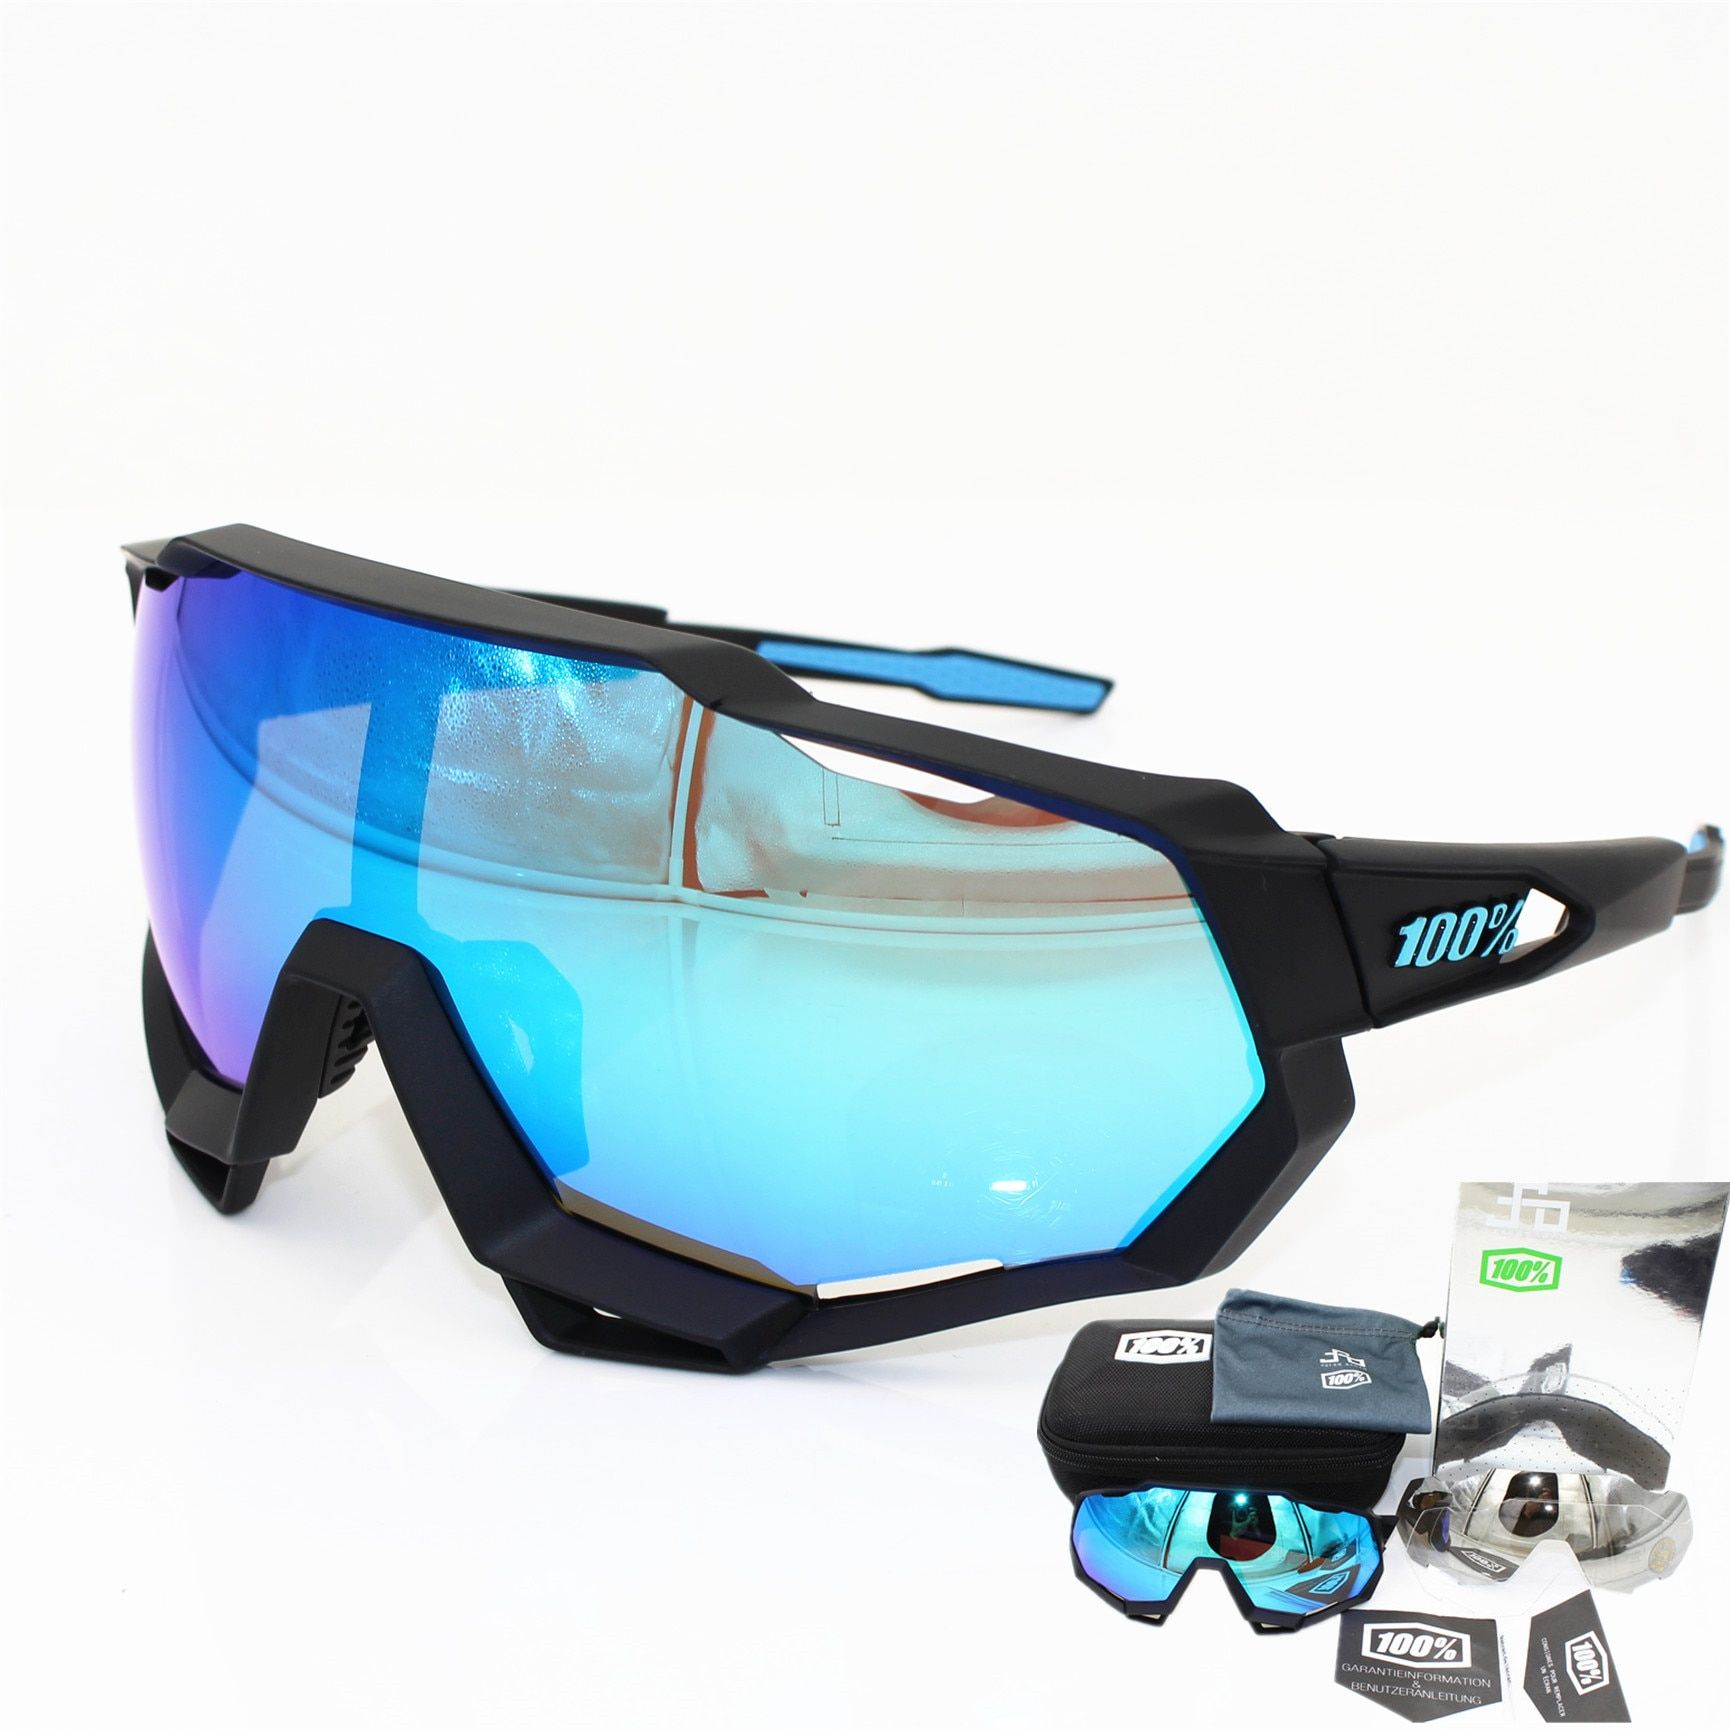 f574b3837a SpeedCraft SL Speedtrap 100% Sports Bicycle Sunglasses Gafas Ciclismo  Cycling Glasses 3 lens UV400 //Price: $9.95 & FREE Shipping // #bikegirl  #bikewomen # ...